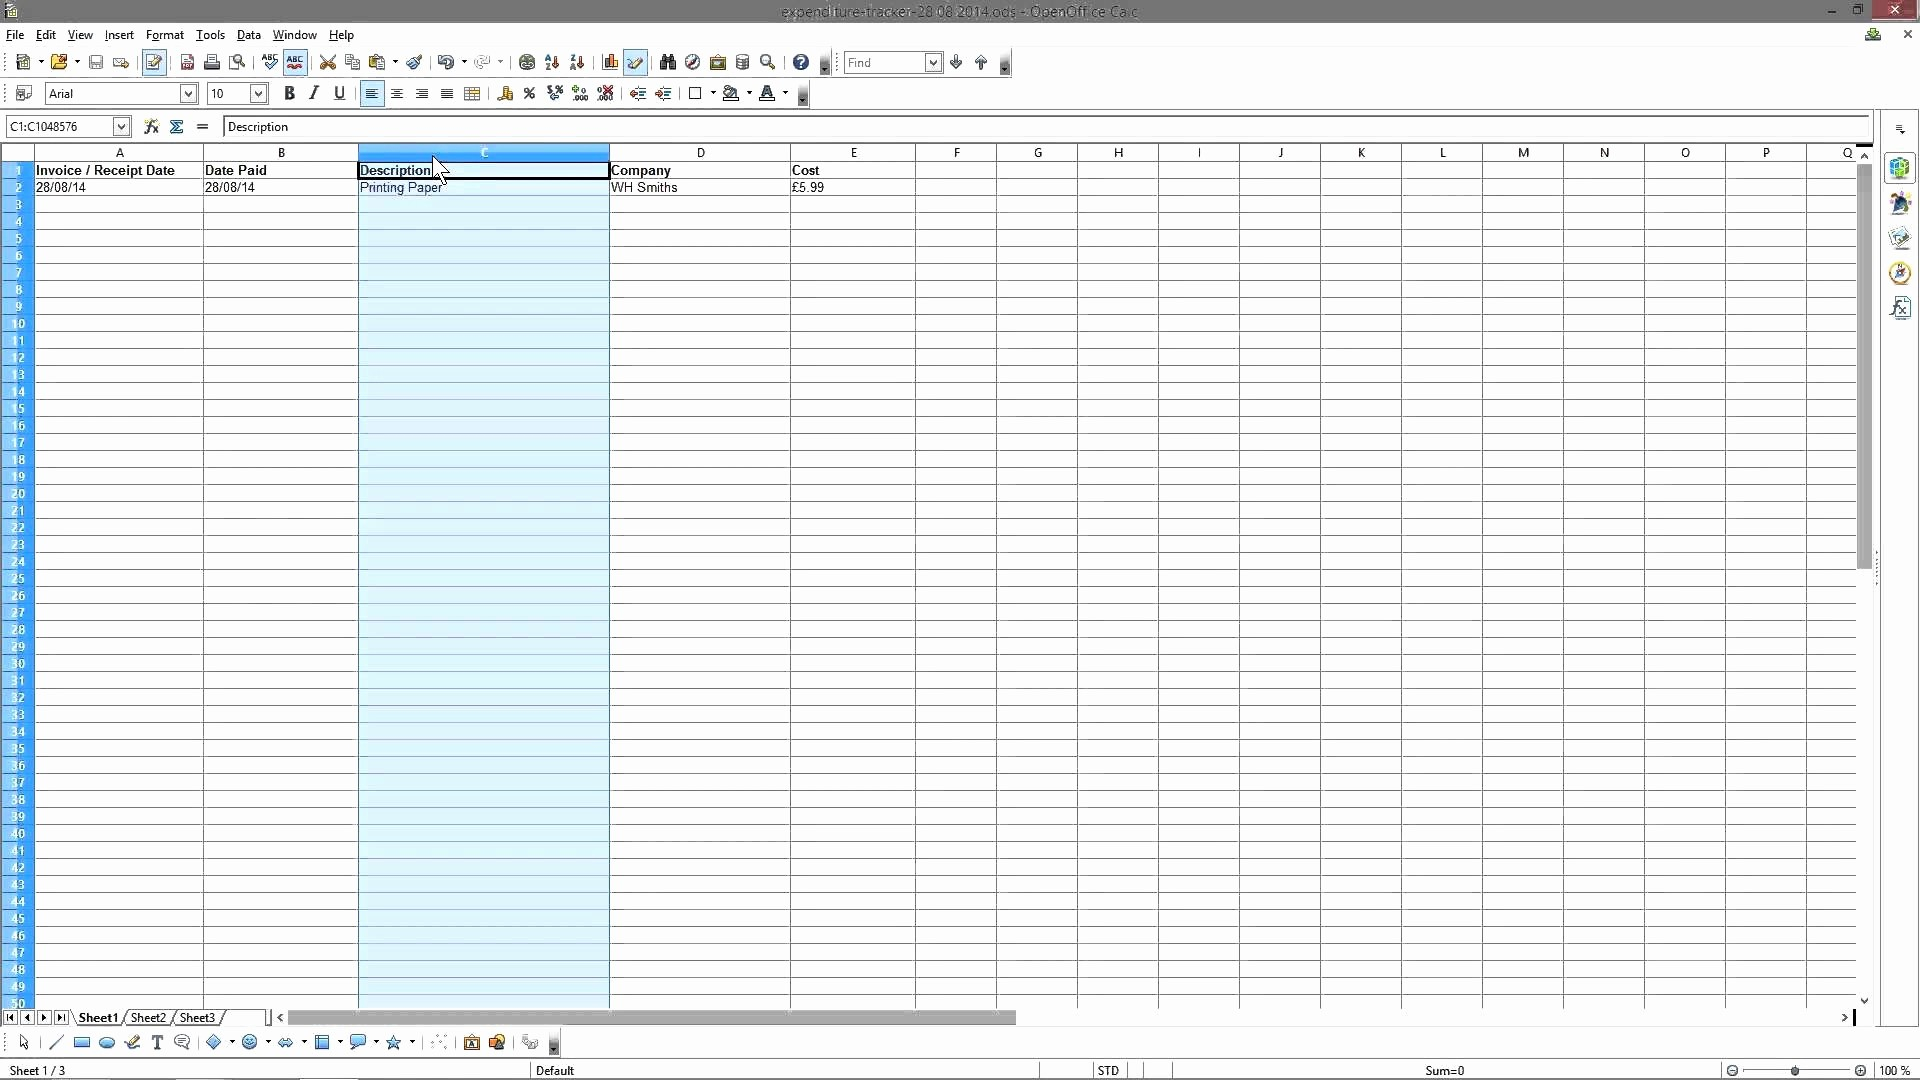 Excel Template For Small Business Bookkeeping Spreadsheet Examples Intended For Examples Of Bookkeeping For A Small Business